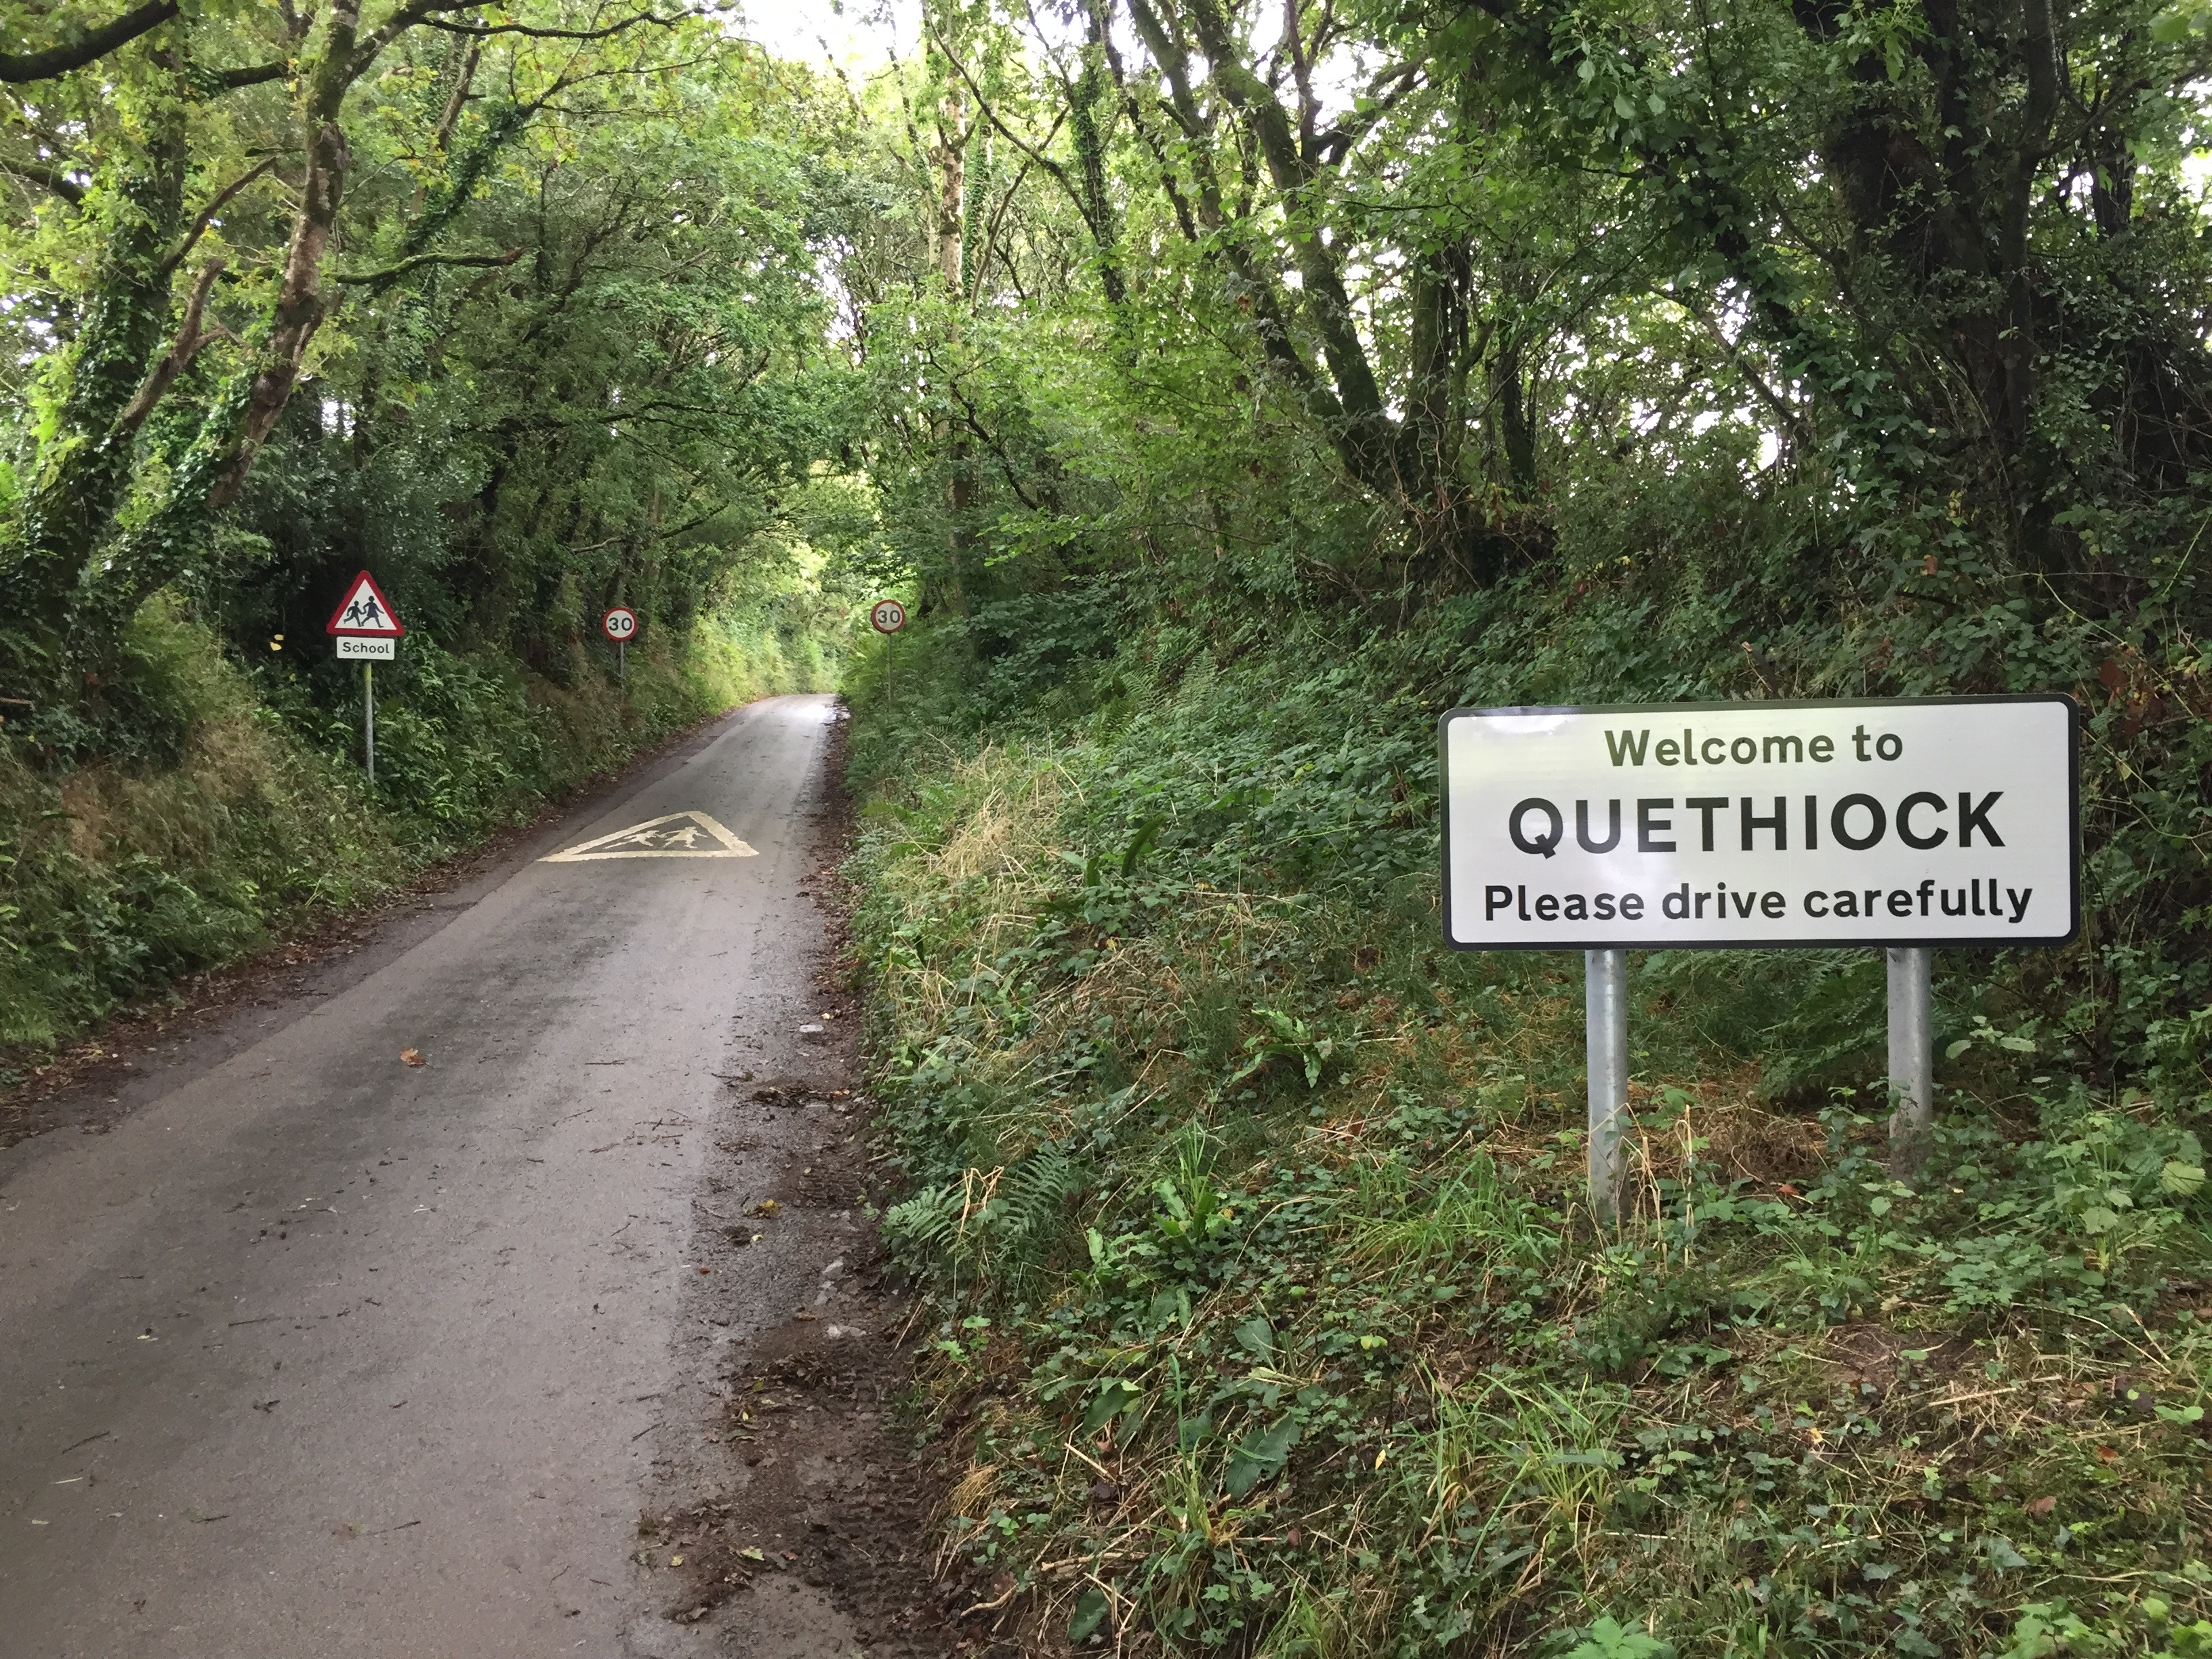 Quethiock village sign